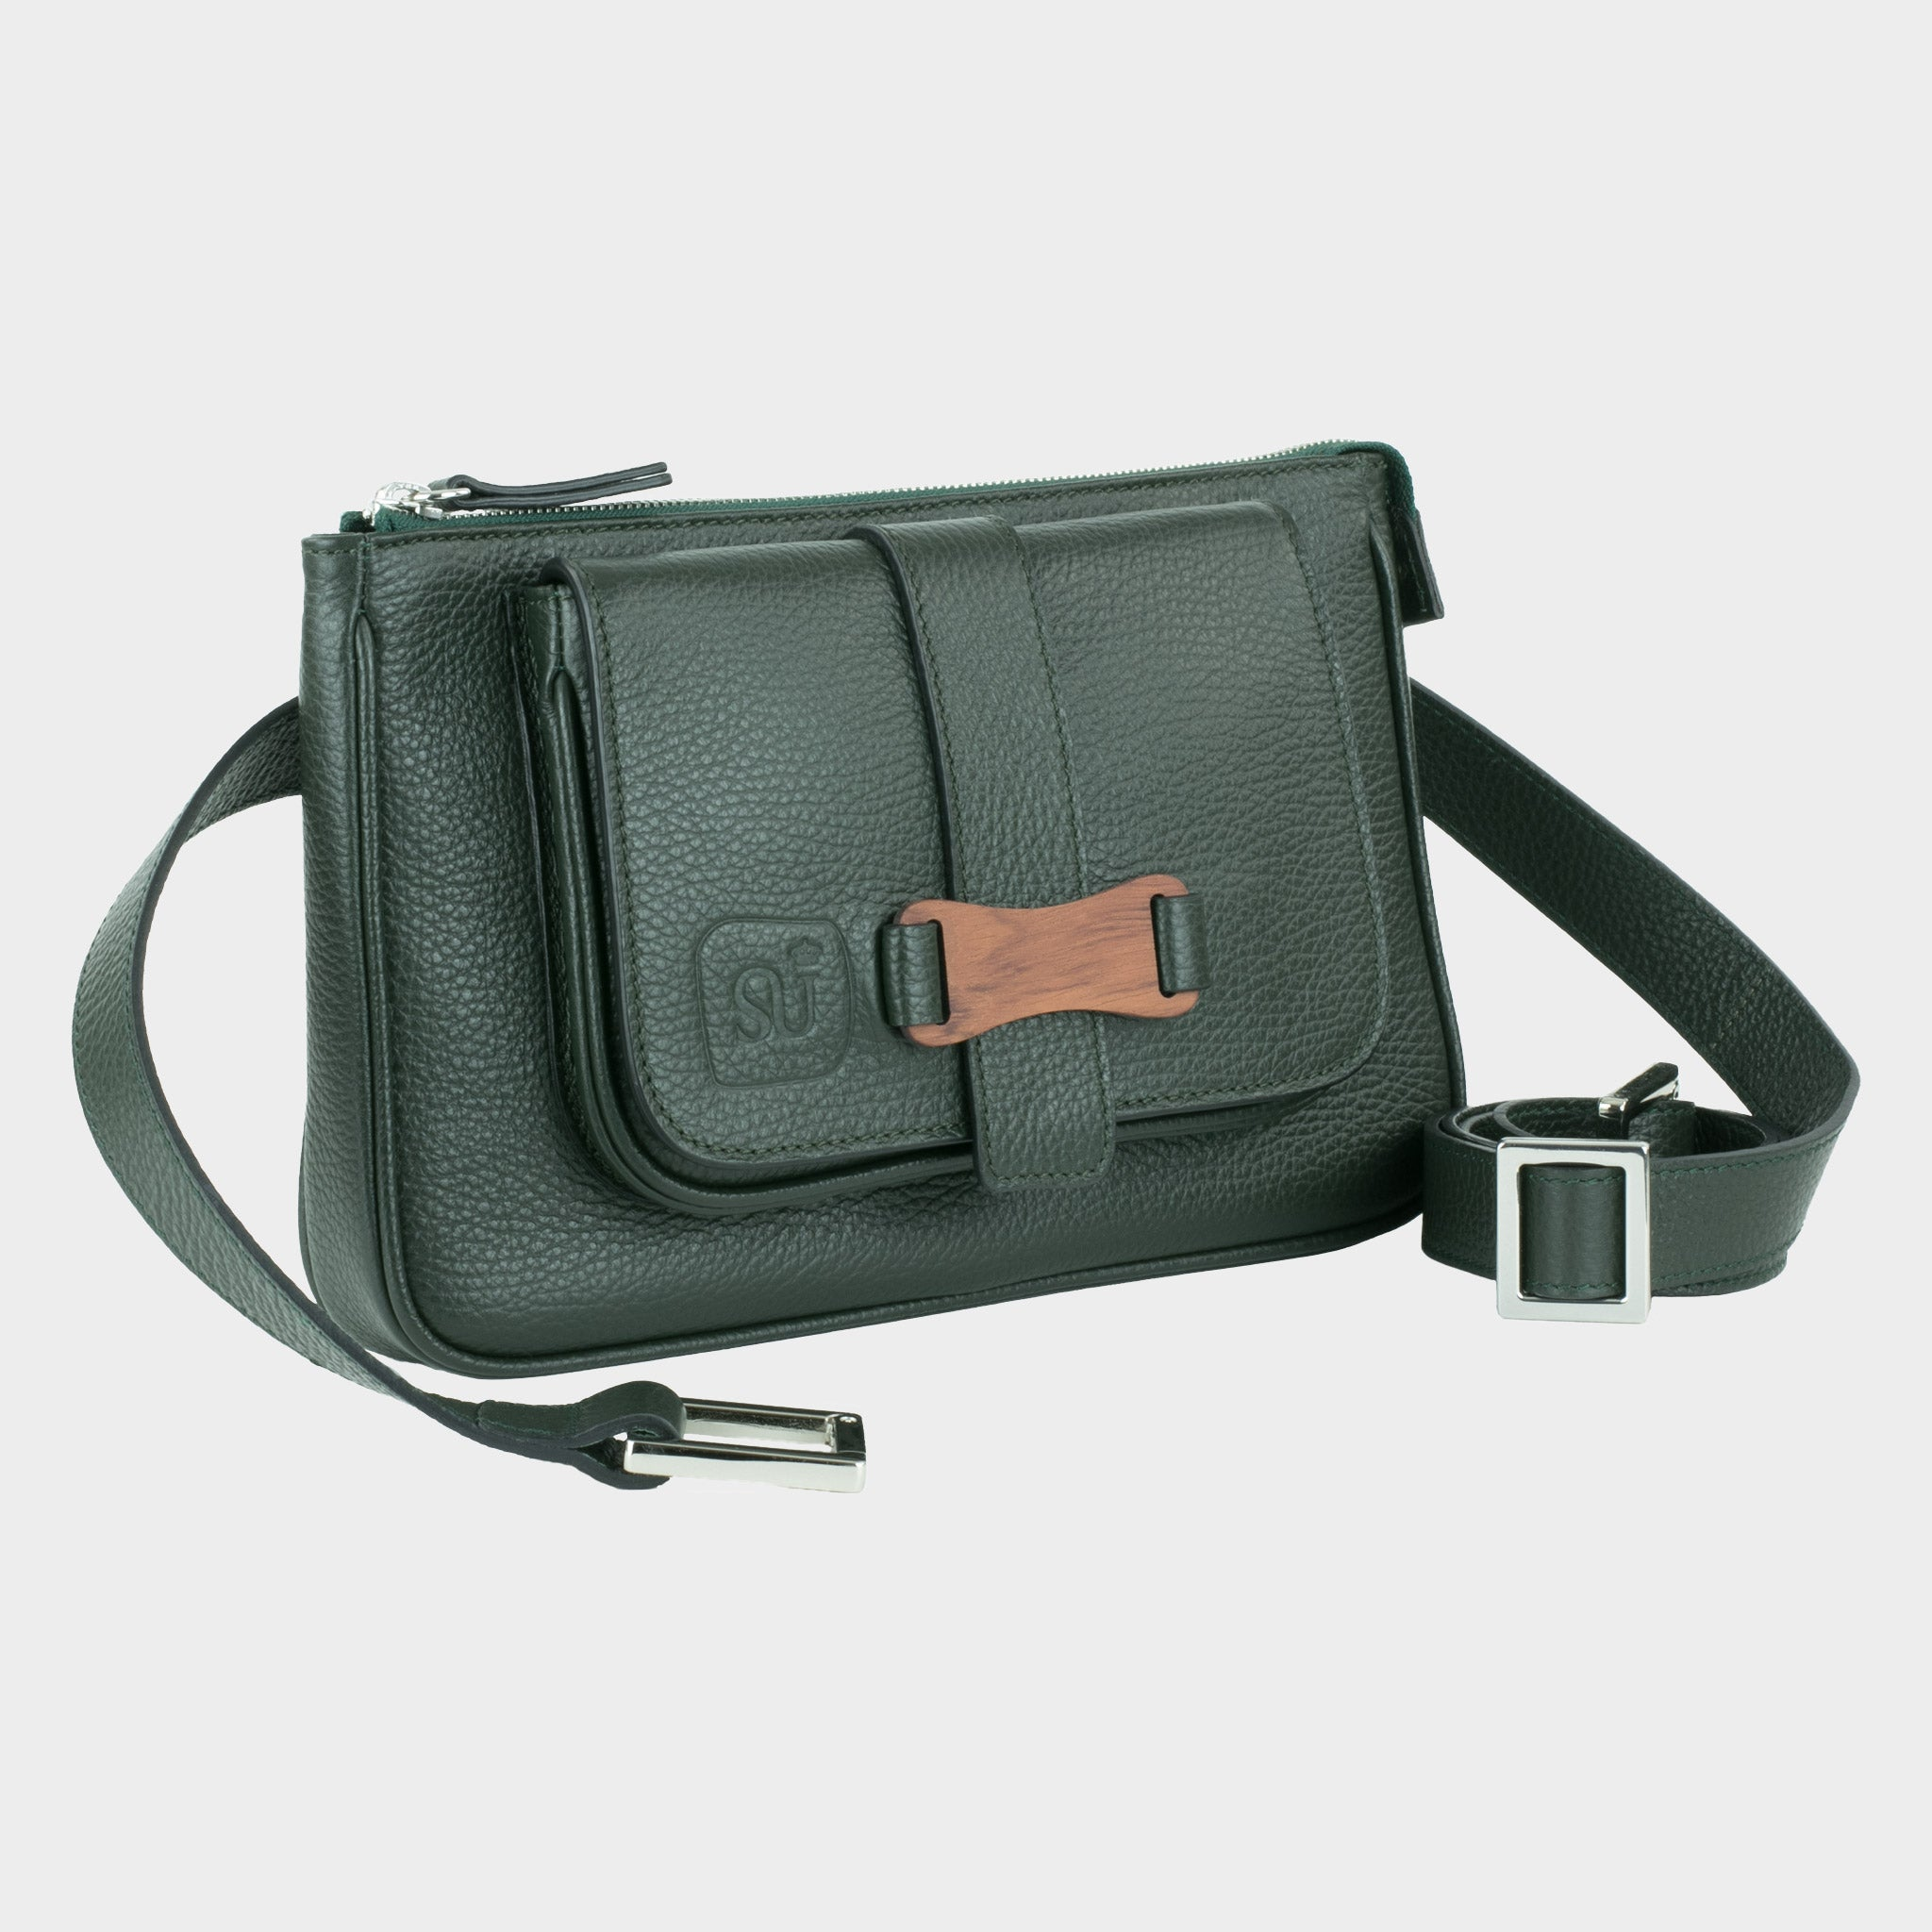 Bags-by-Sumageza-Su-Le-Double-Crossbody-dark green-calf-leather. A piece of precious Bubinga wood at the front set an elegant contrast to the dark green leather and chromium buckles